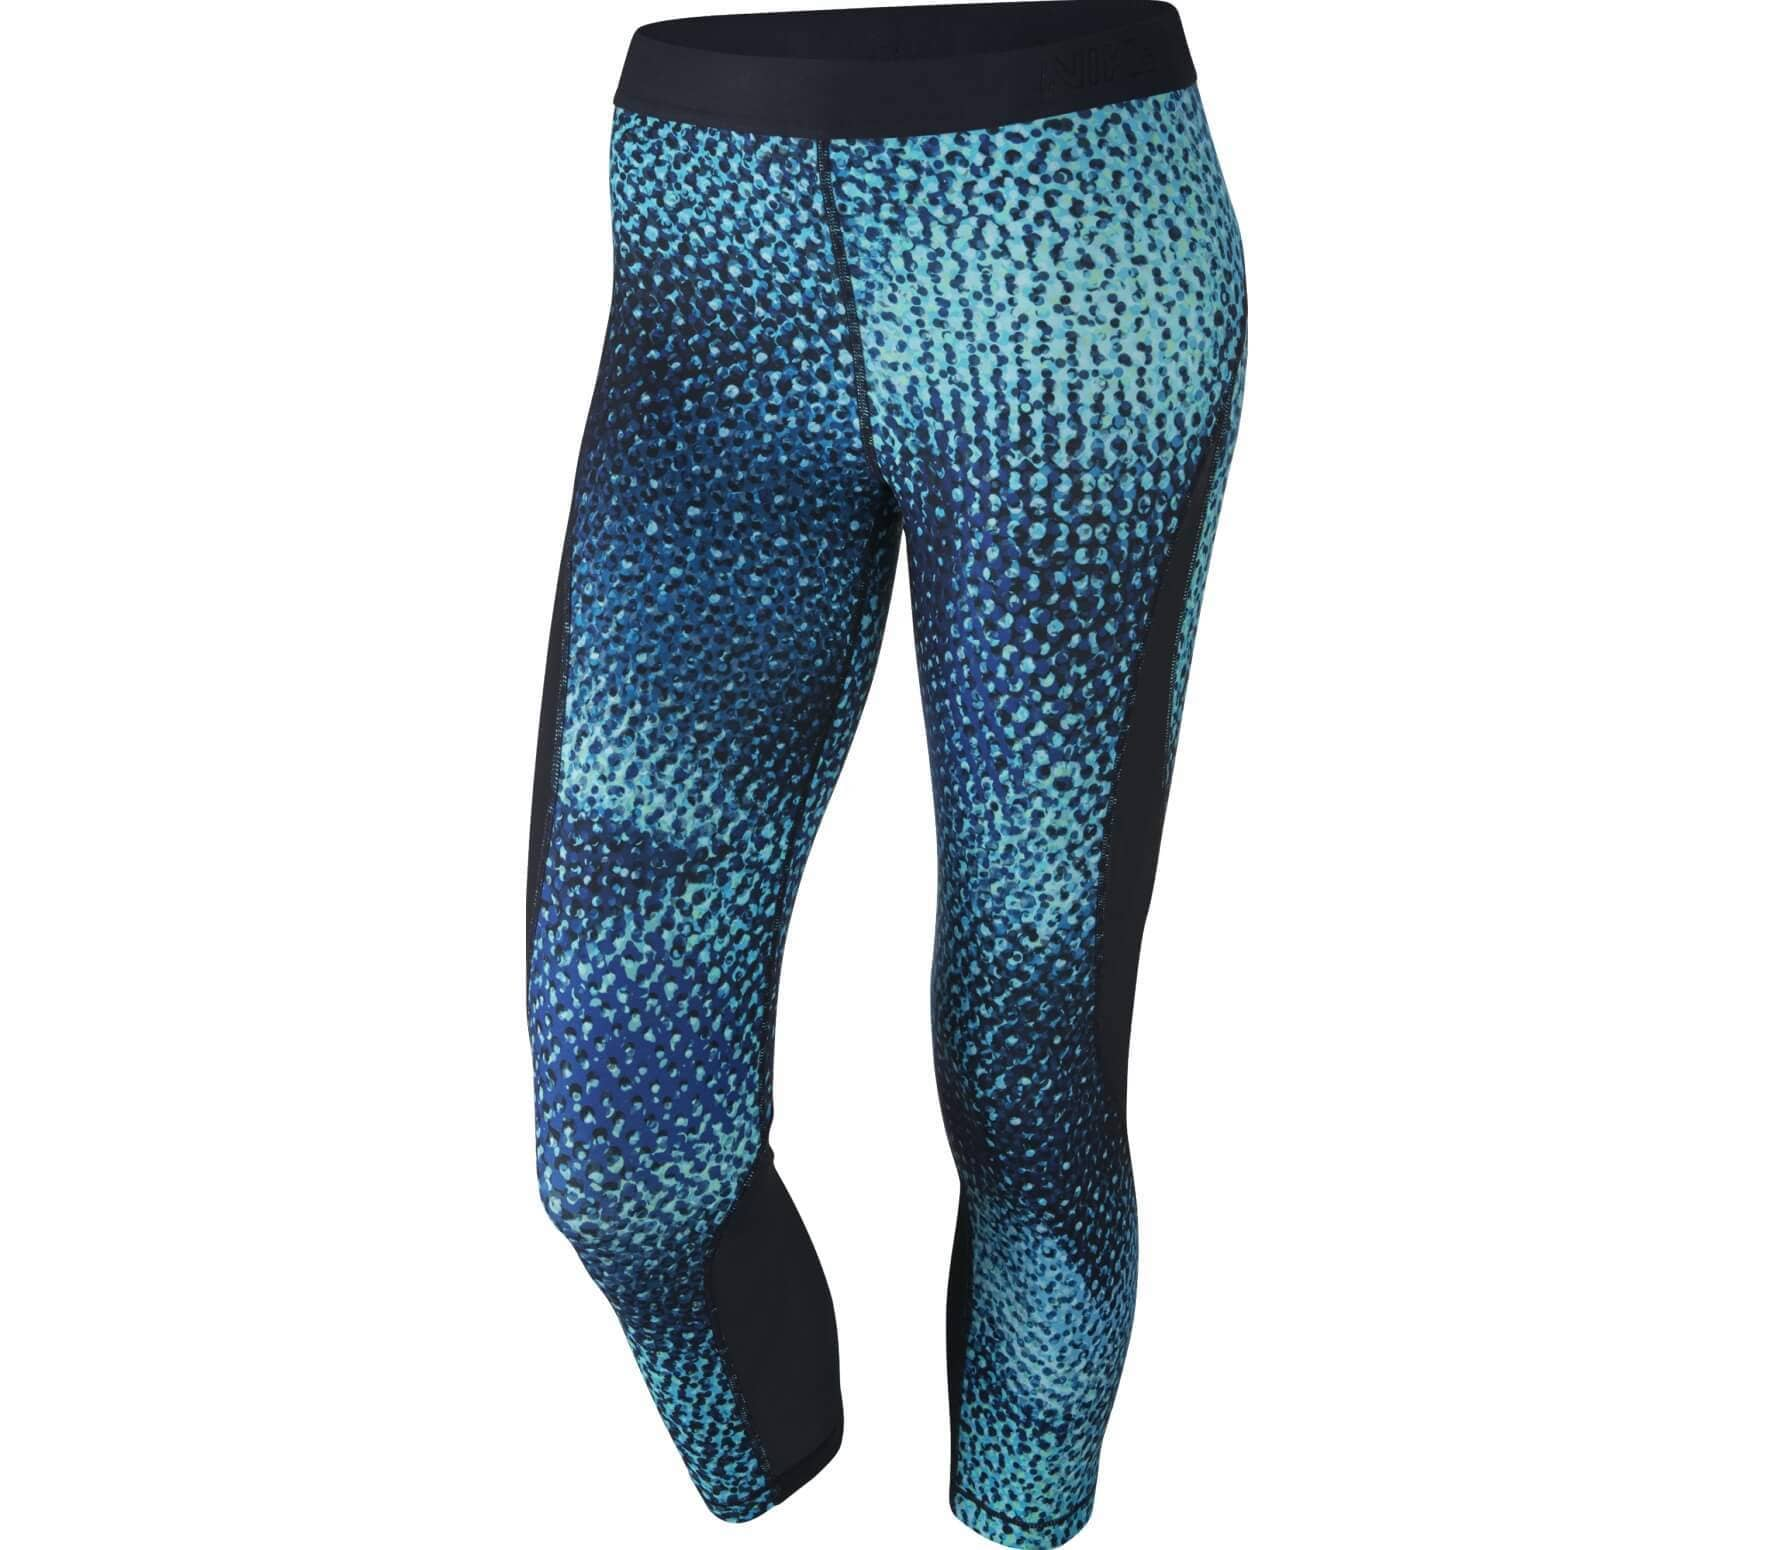 d69591236e58 Nike - Pro Hypercool women s training capri pants pants (blue black ...